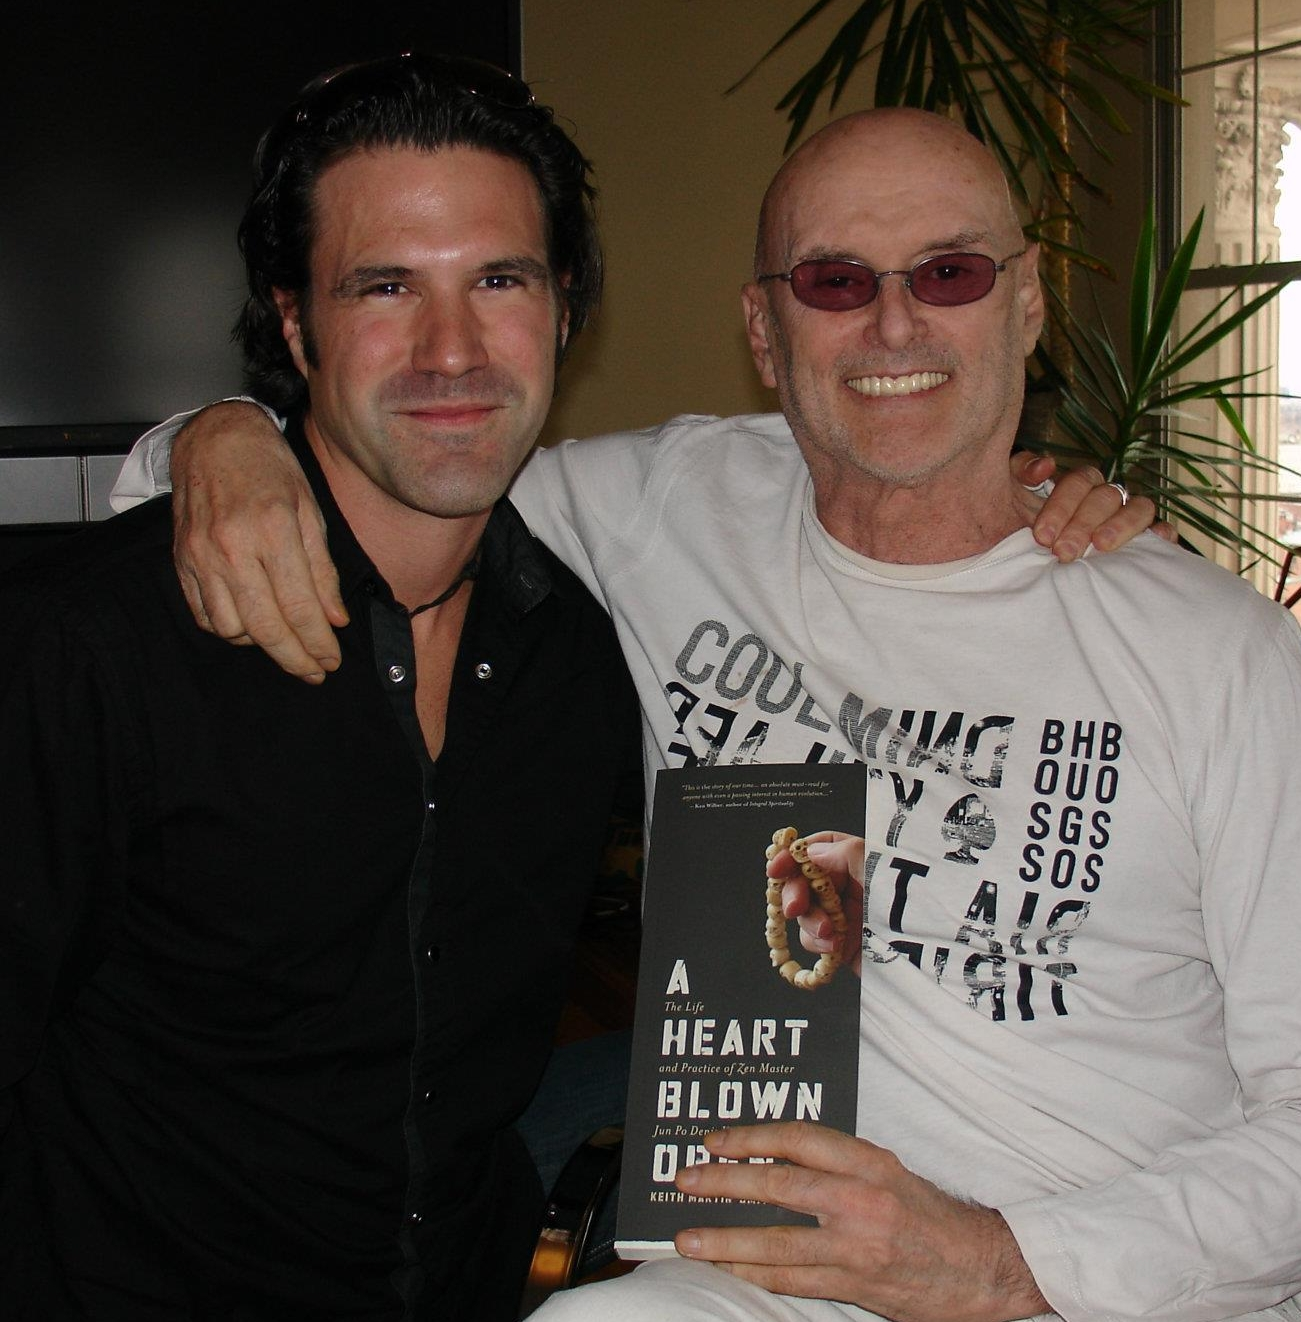 Keith and Ken Wilber, who endorsed  A Heart Blown Open.